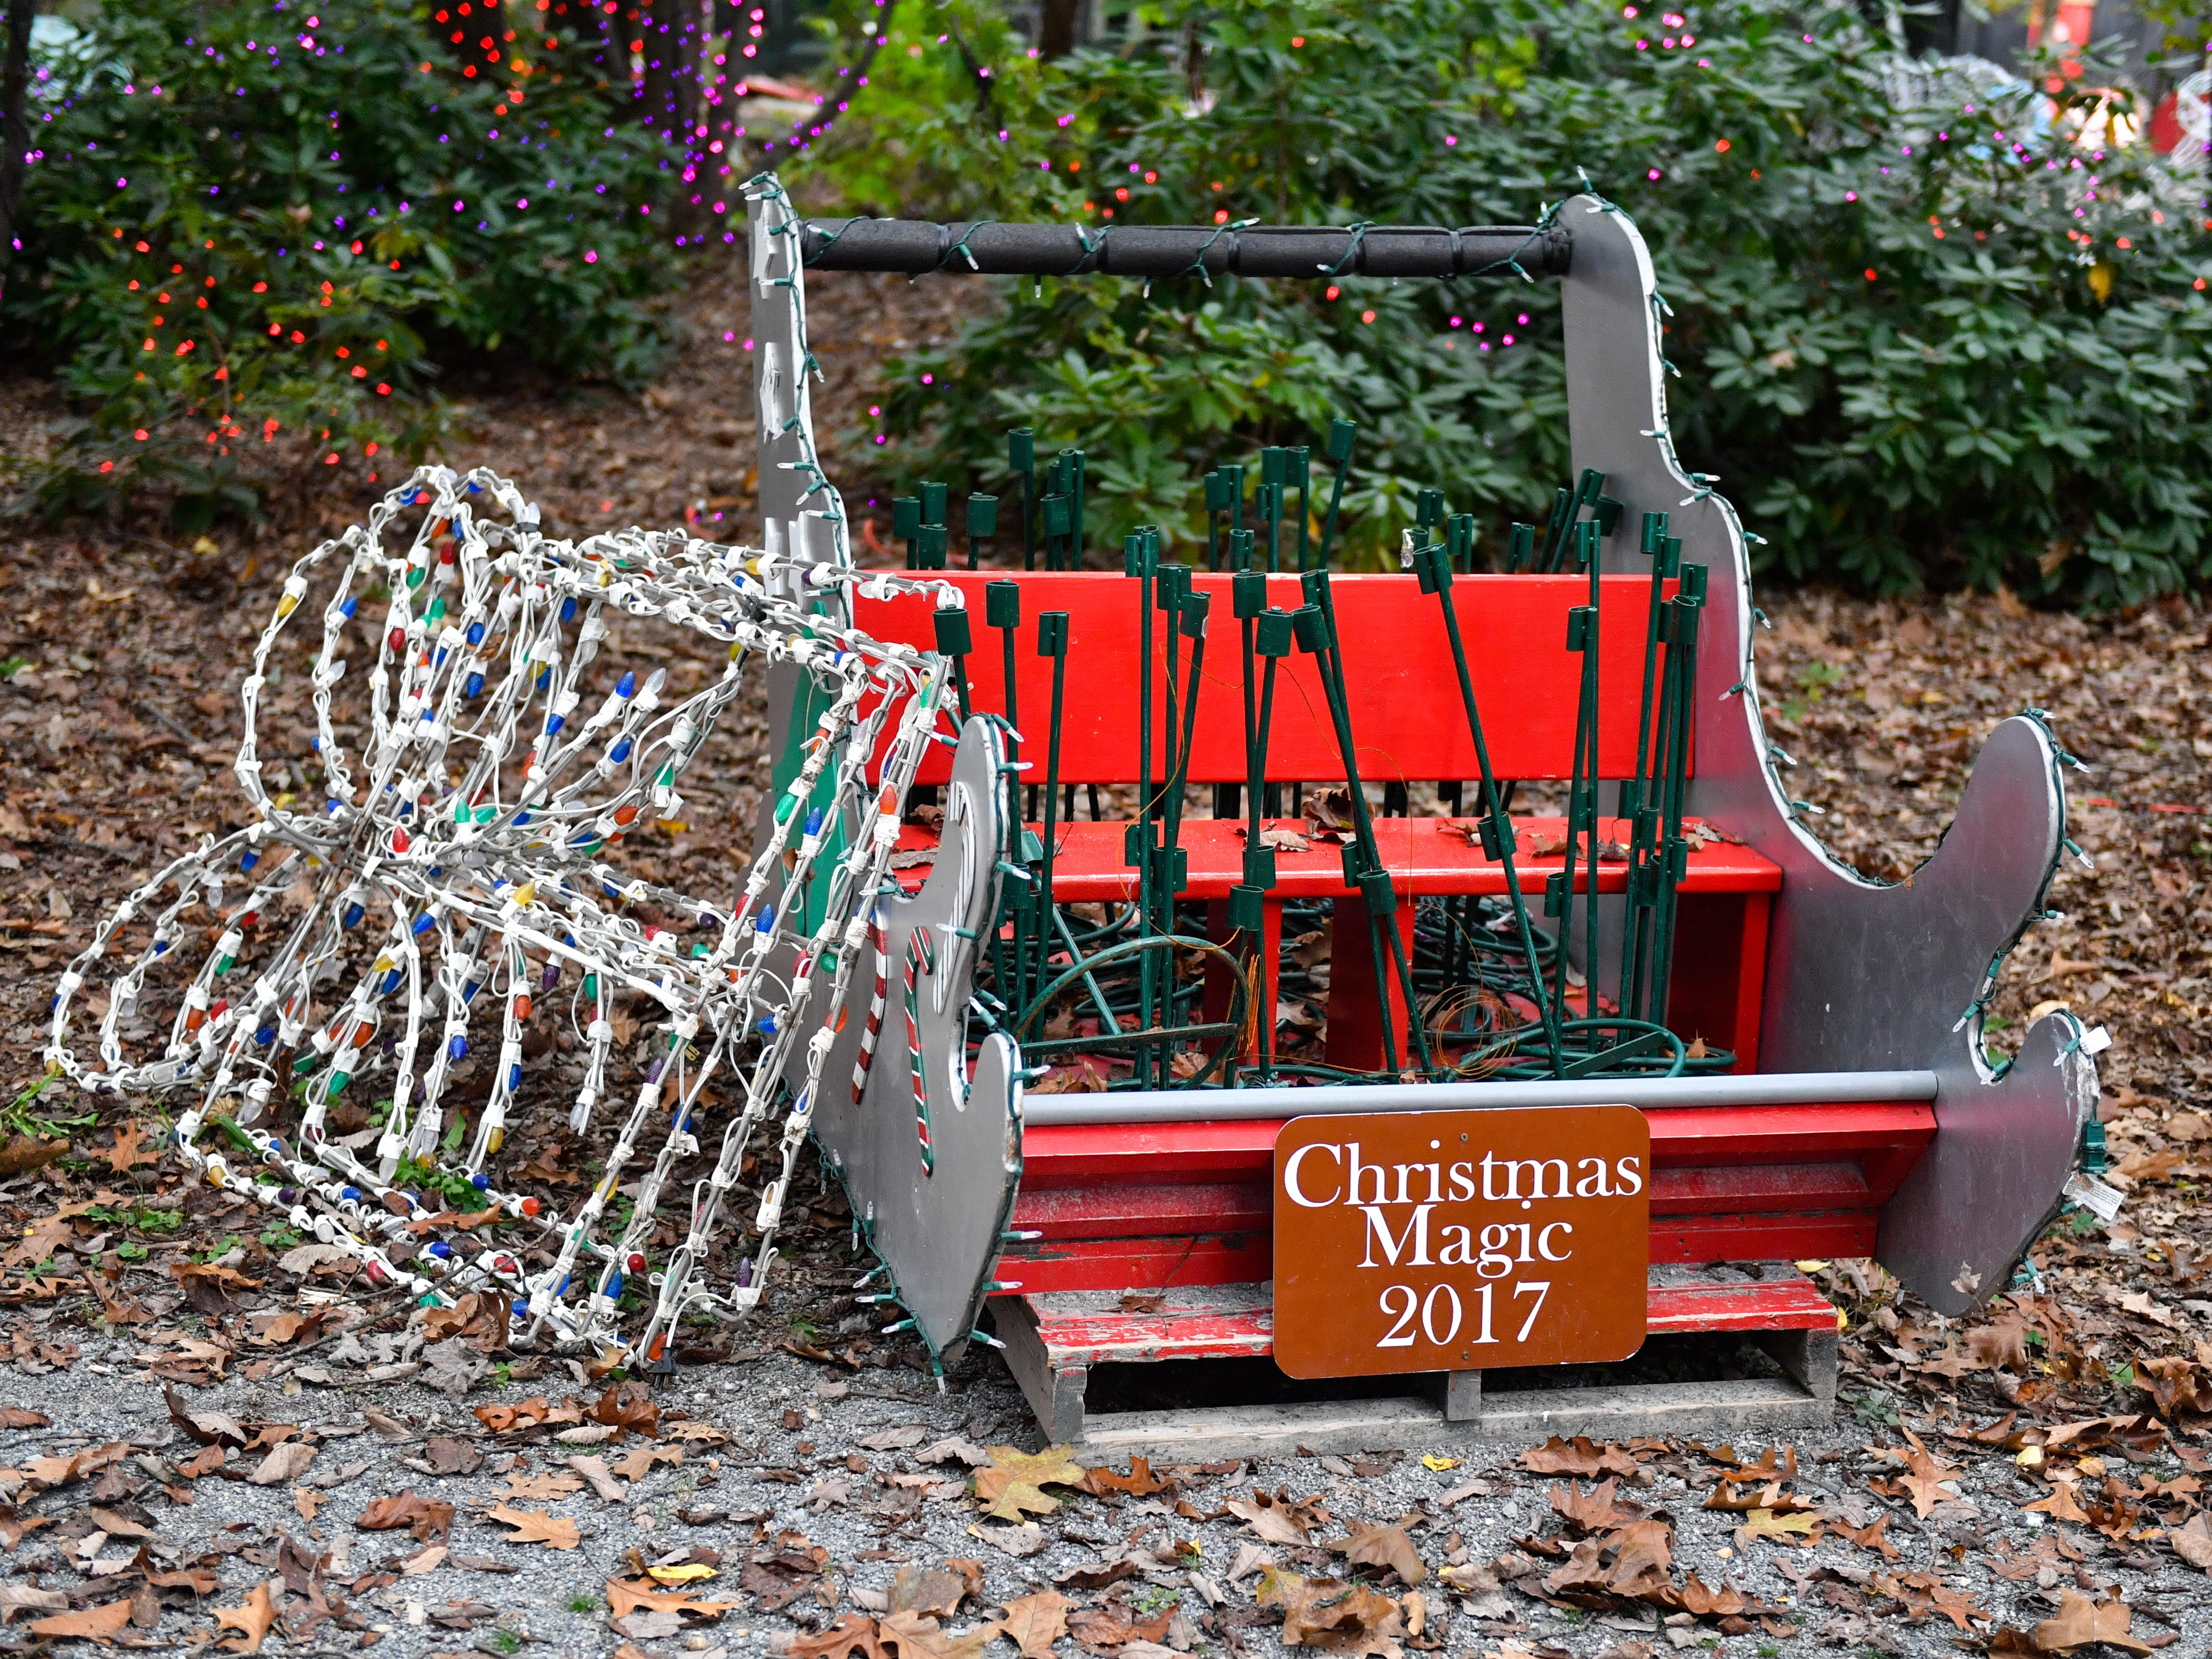 Decorations from previous years will be used at Christmas Magic in Rocky Ridge County Park for 2018.